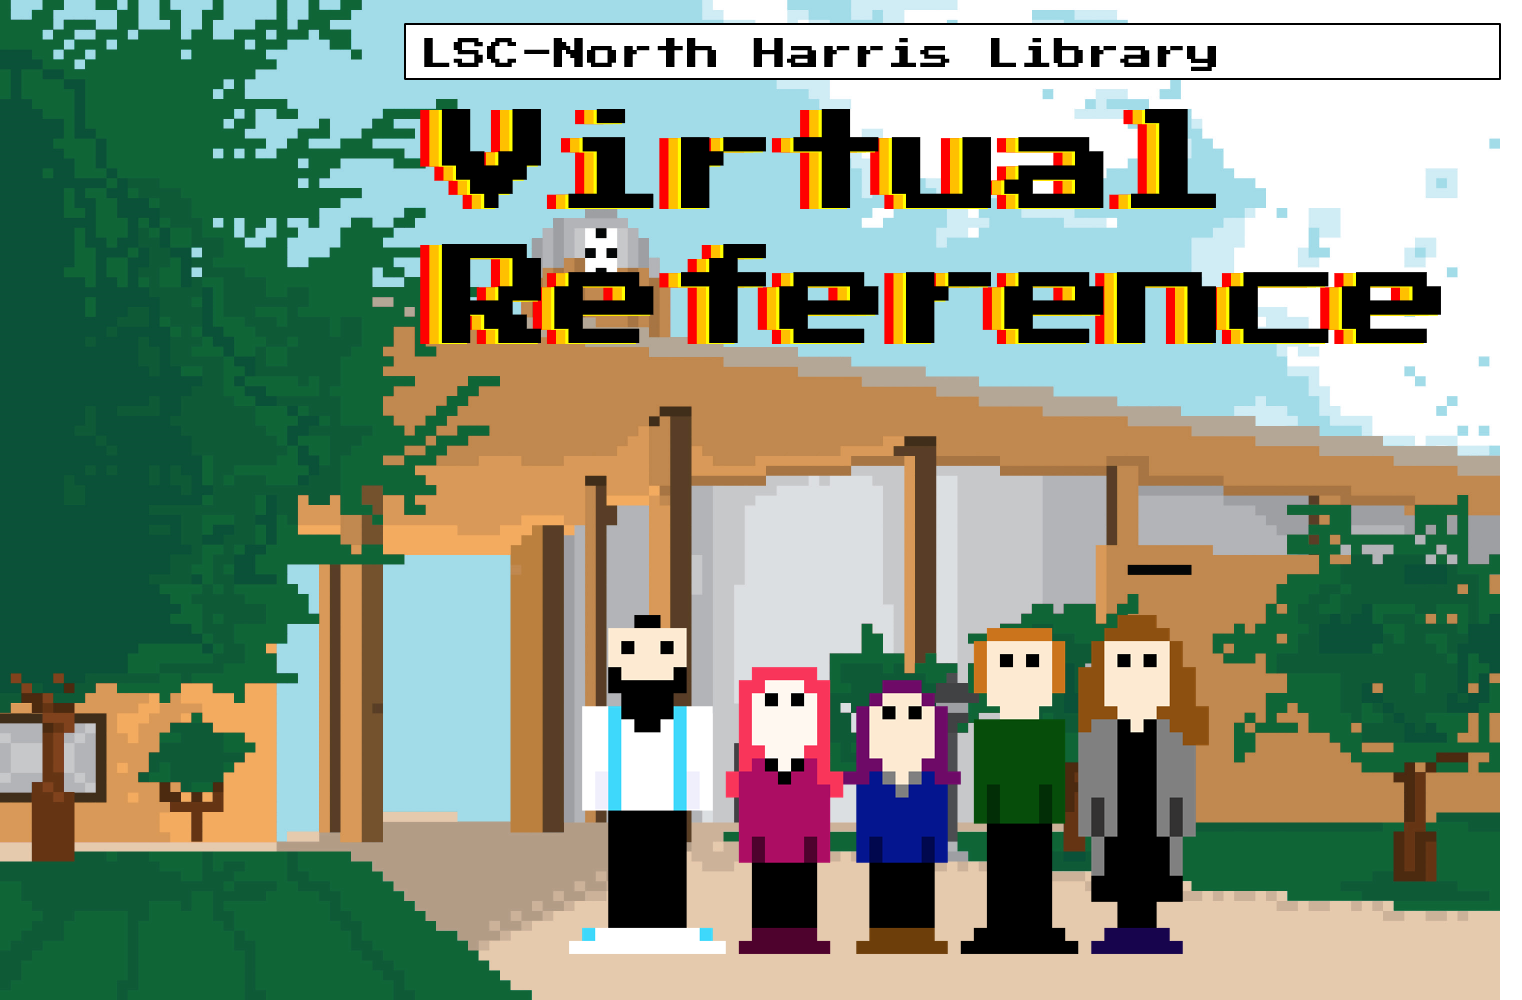 LSC-North Harris Library Virtual Reference